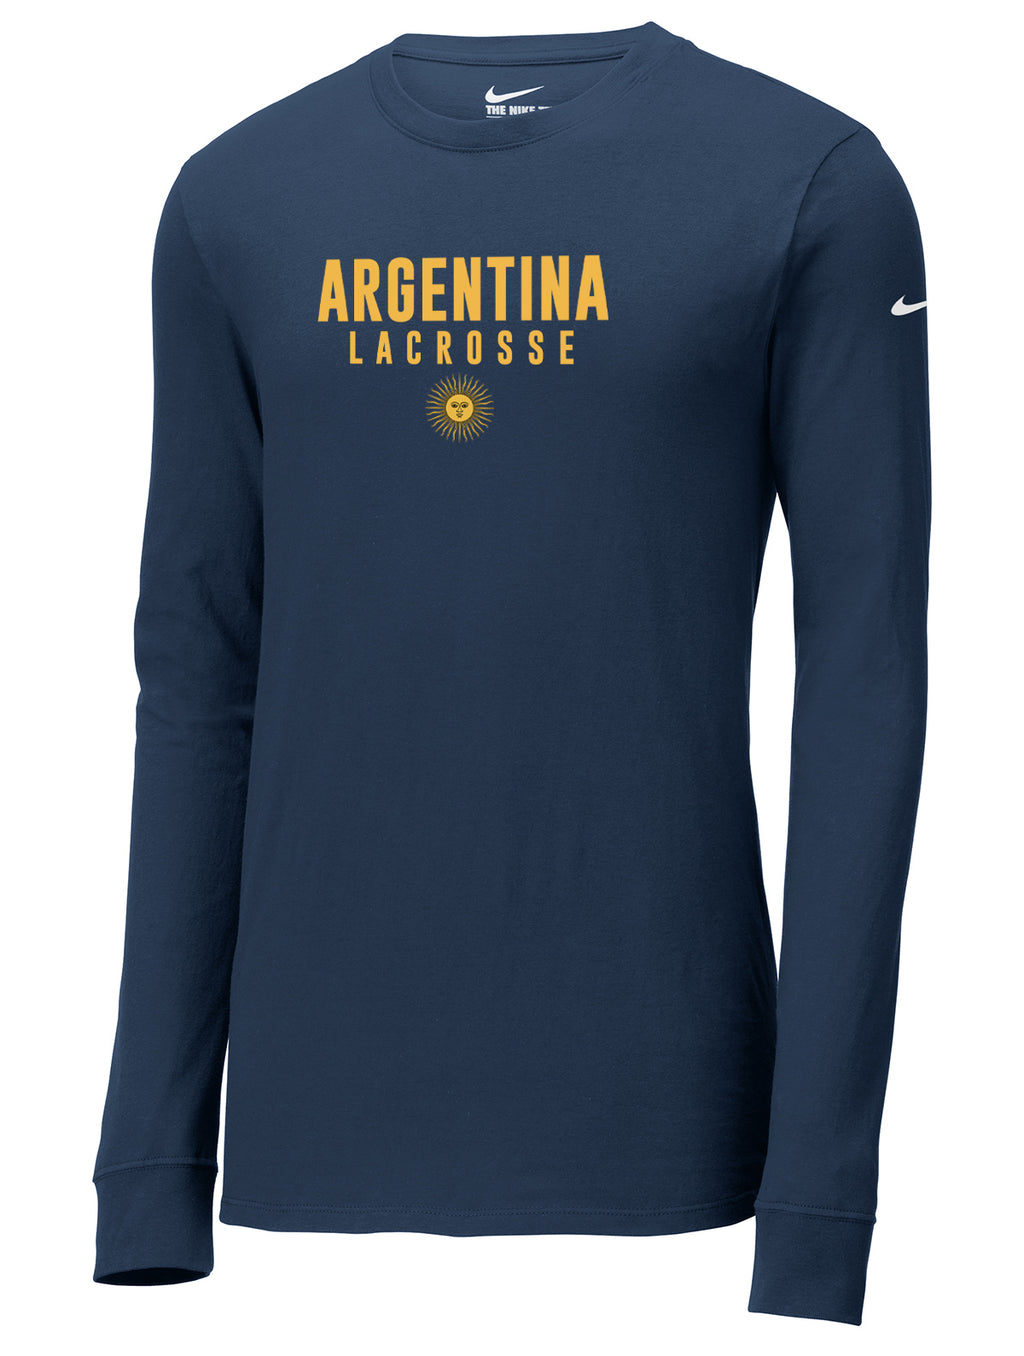 Argentina Lacrosse Nike Core Cotton Long Sleeve Tee